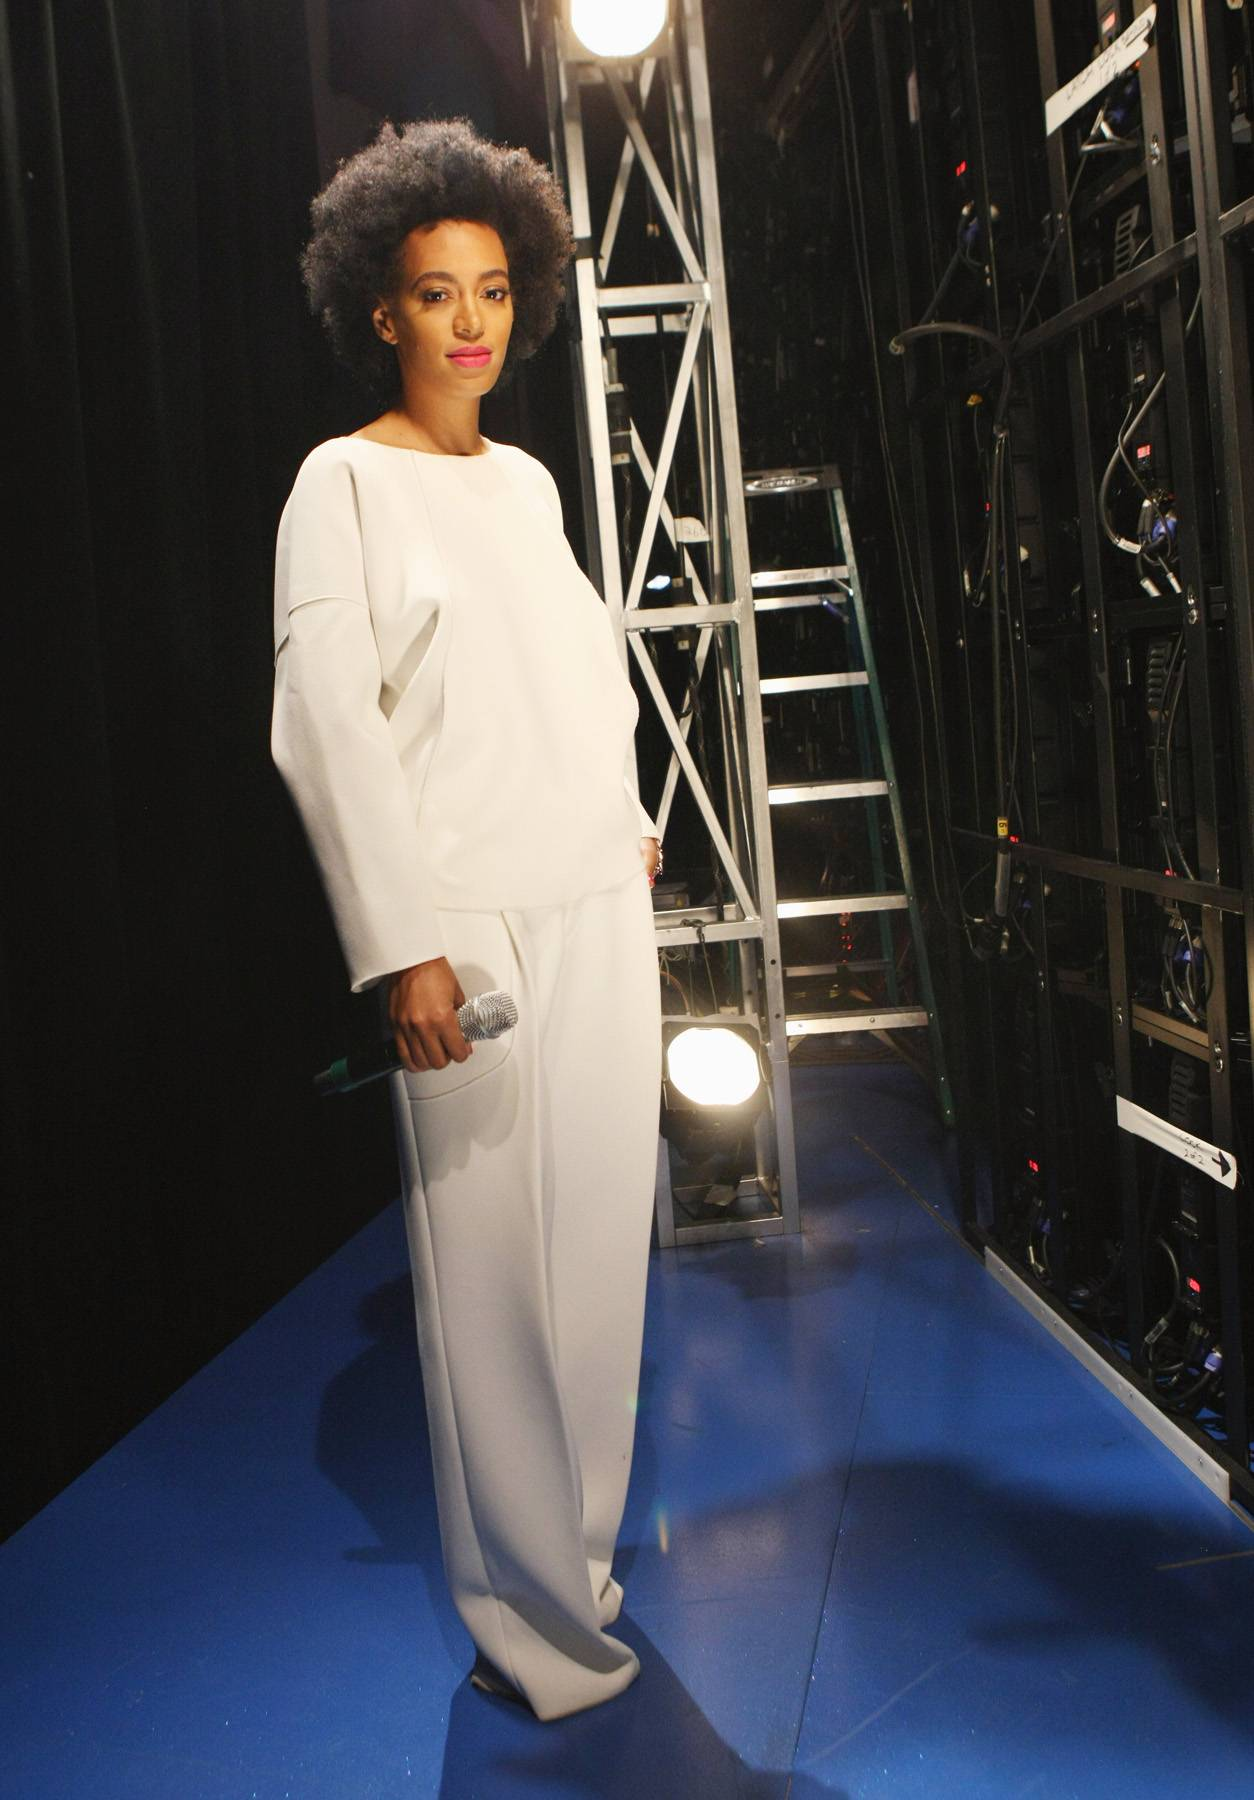 Style Star - Solange poses backstage against a backdrop of lights. (Photo: Bennett Raglin/BET/Getty Images for BET)